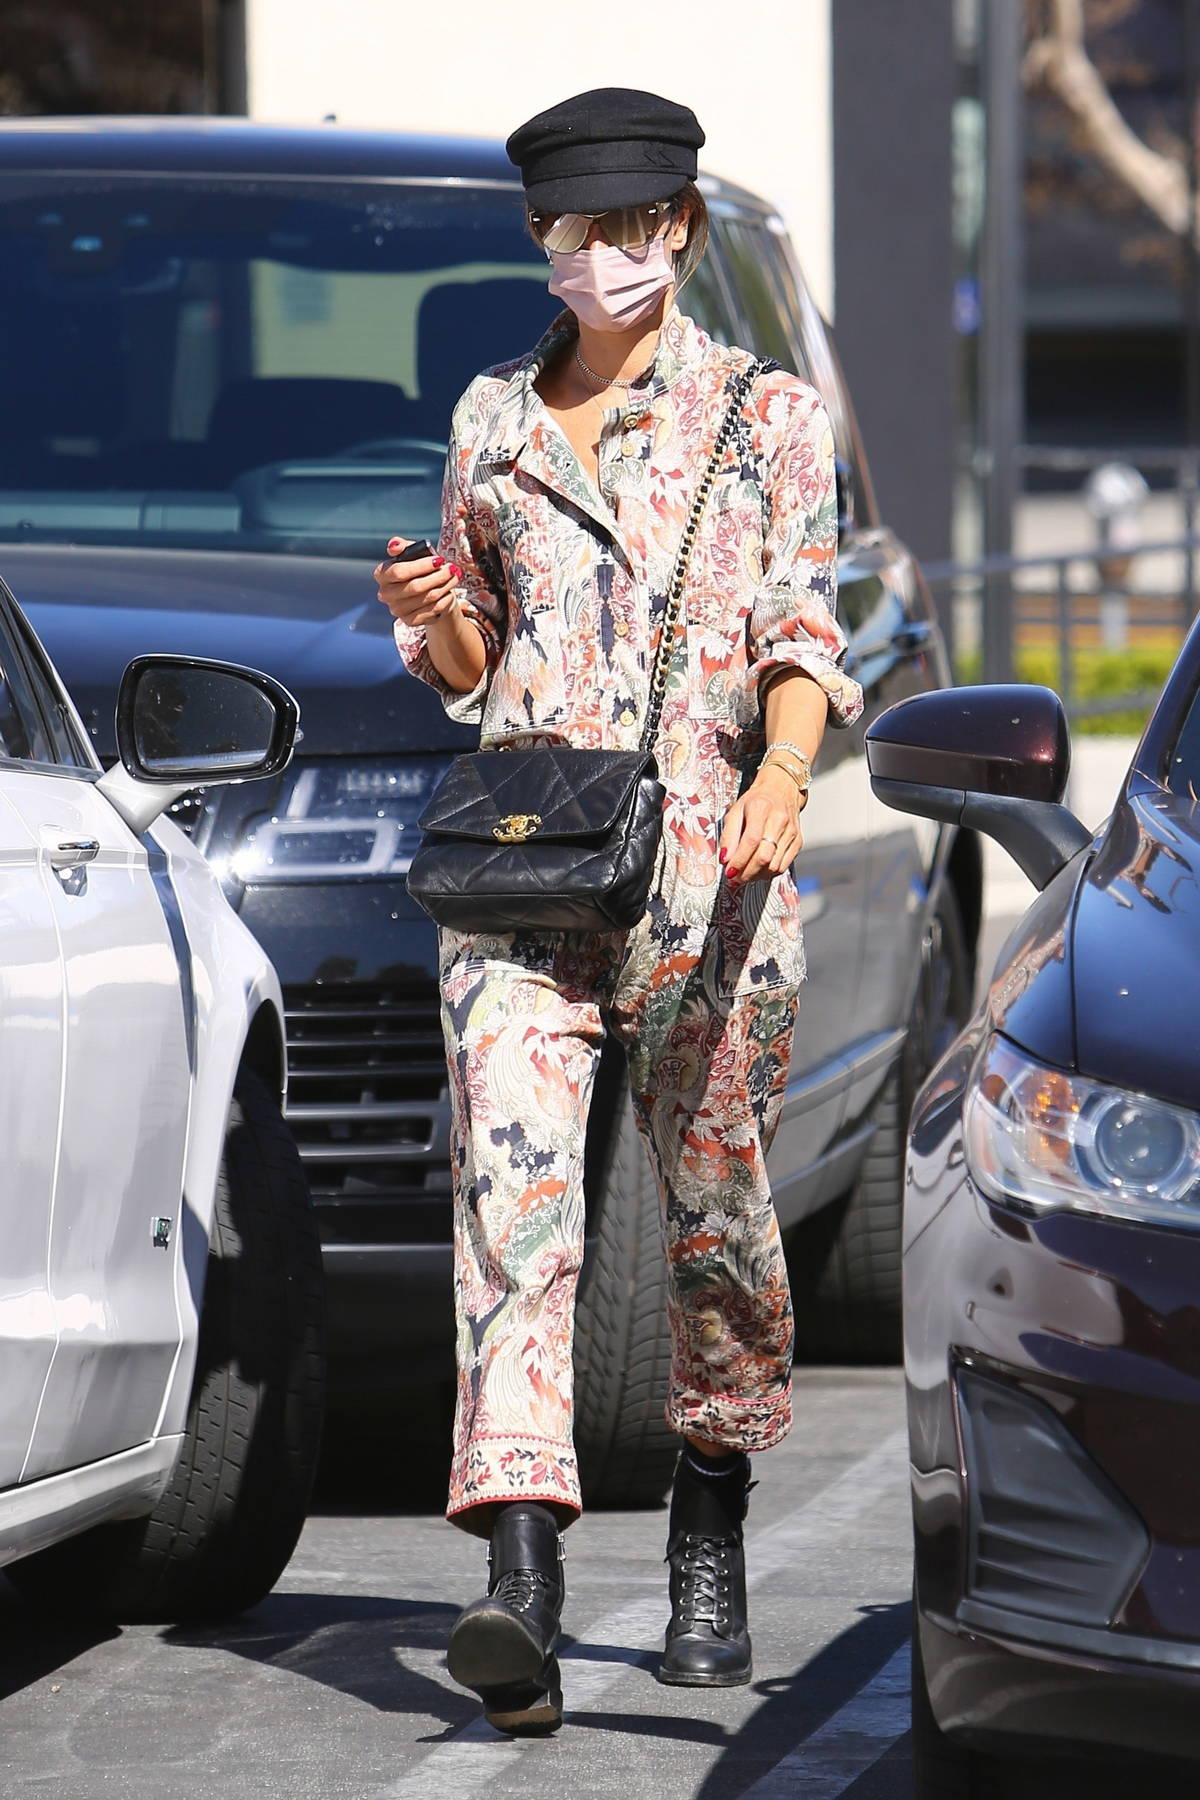 Alessandra Ambrosio dons a colorful patterned jumpsuit while visiting a skin care clinic in Los Angeles